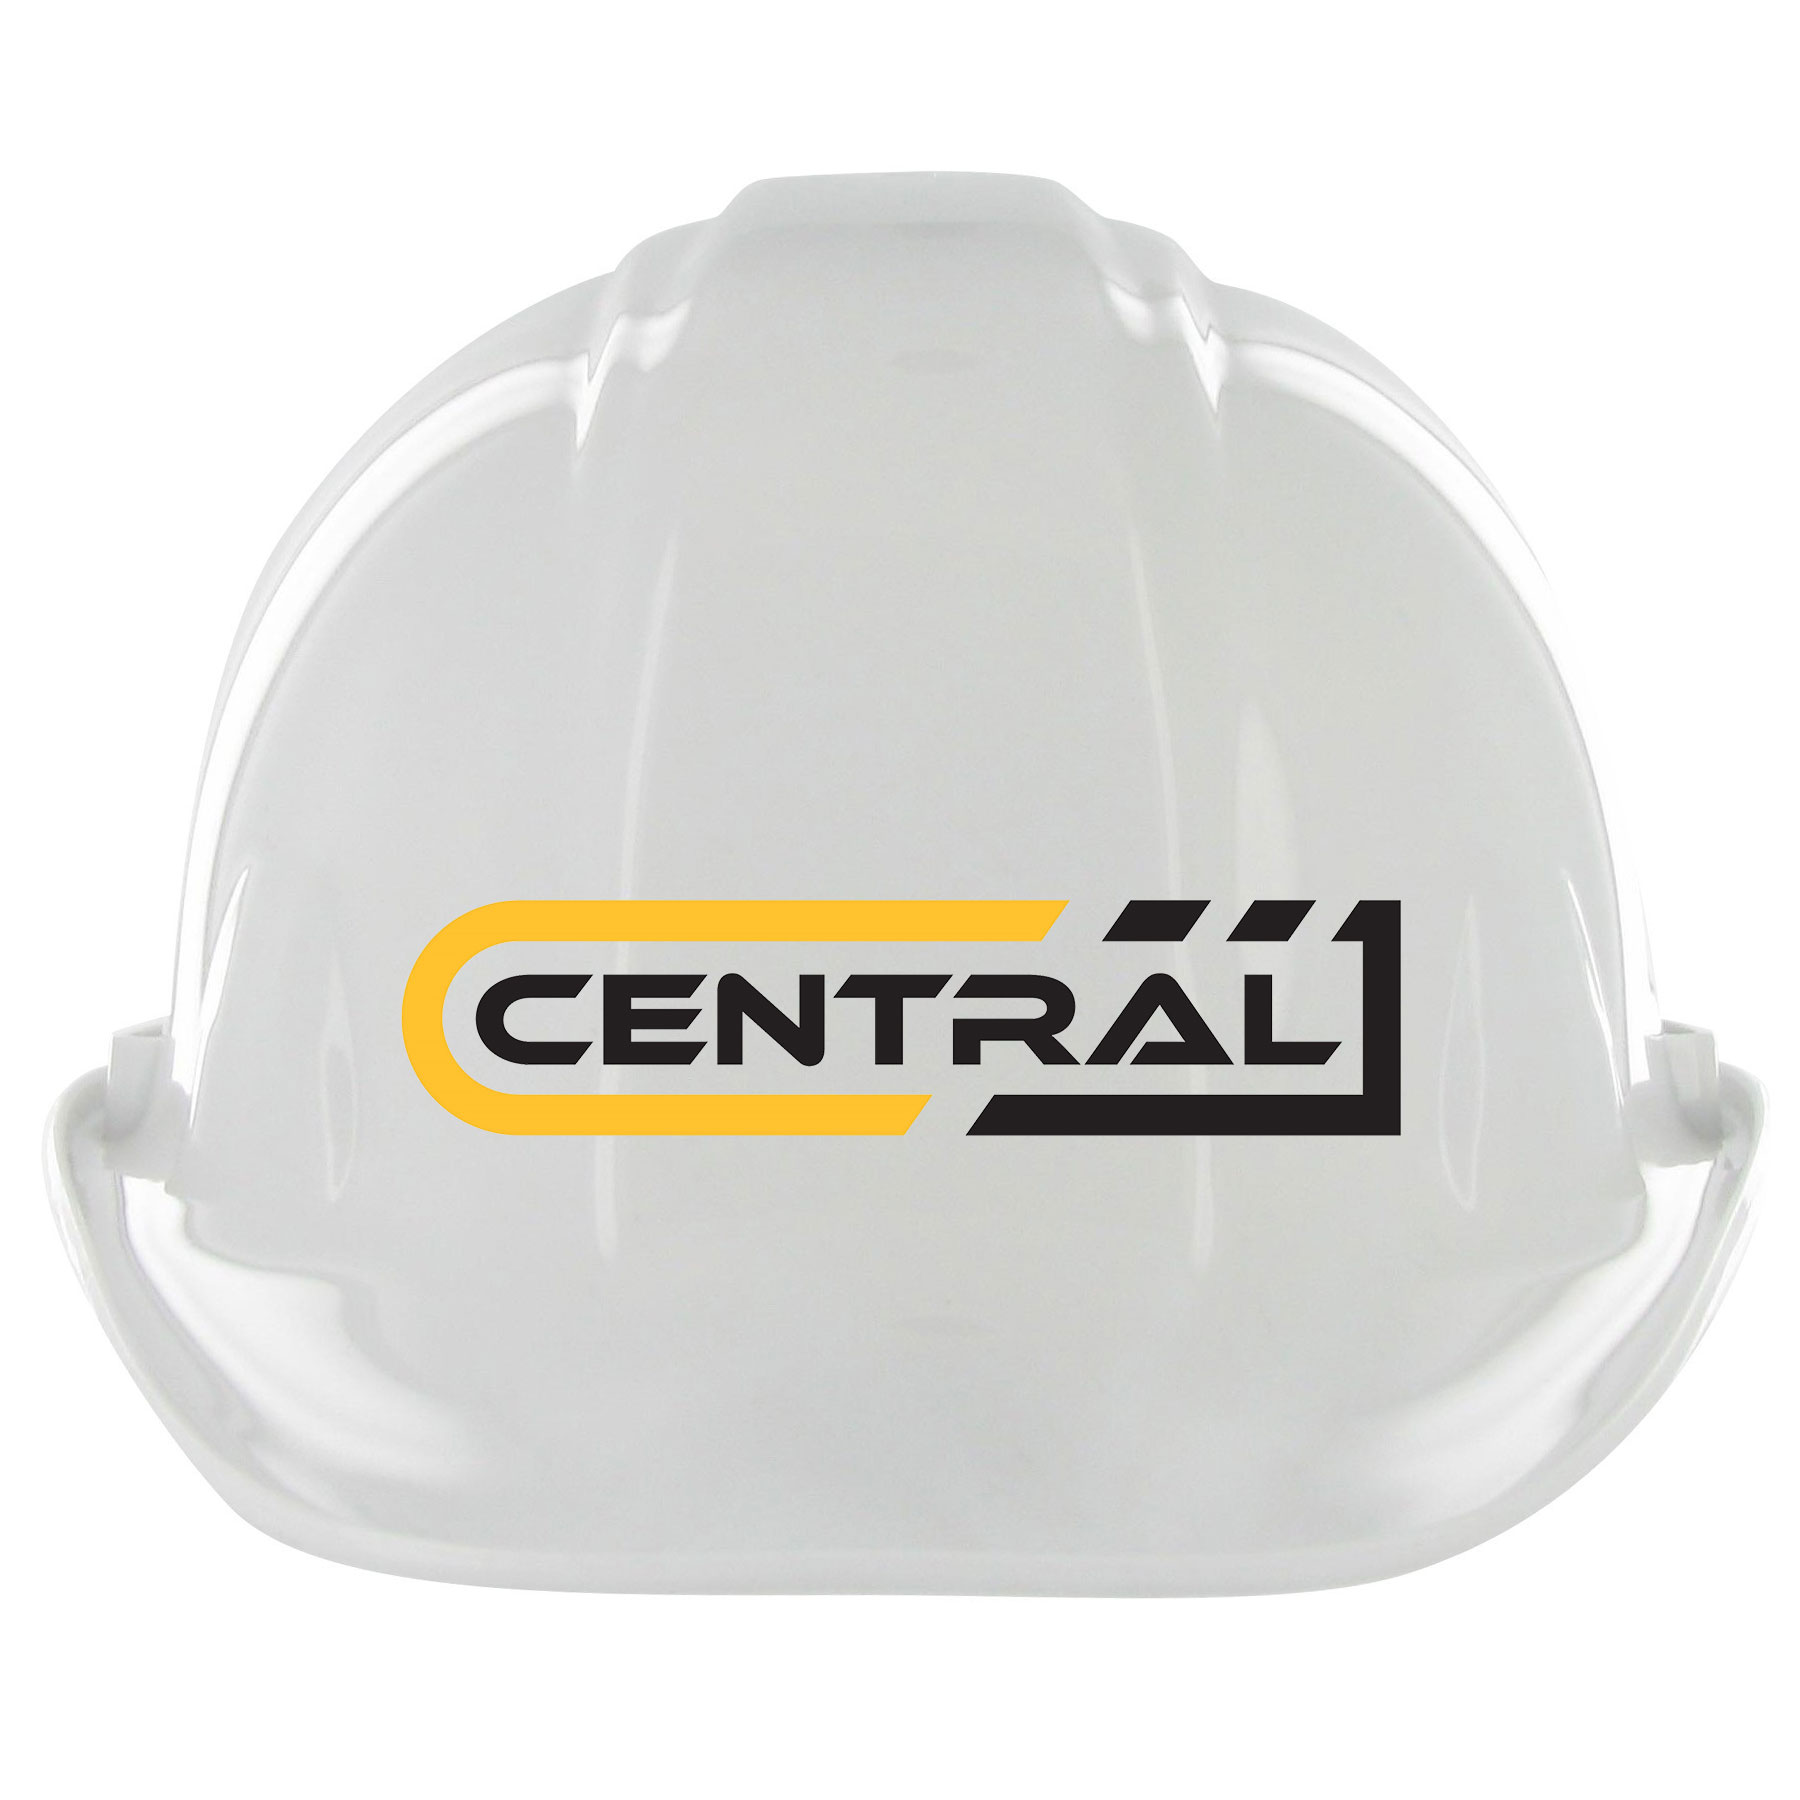 Central Civil Construction Florida